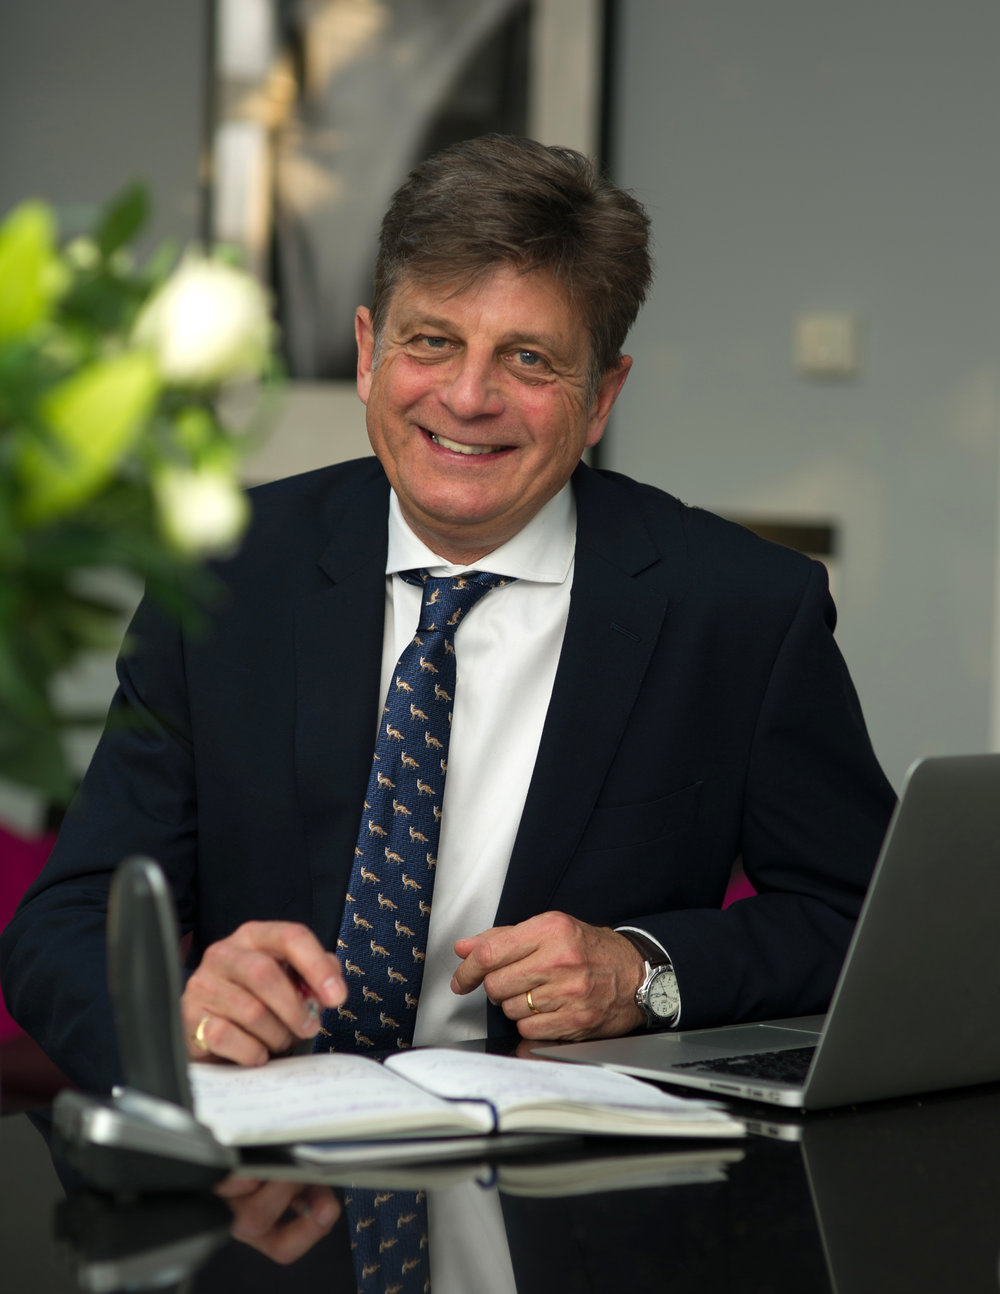 Tony Markowski - Tony is a fully accredited member of the Association of Education Advisers. Twenty years of successful senior management, followed by three as a MAT Director means Tony is experienced in MAT expansion, specialist schools delivery and teaching and learning. Ofsted trained, Tony led Brunel University School of Education to 'Outstanding' results at its last inspection. However, it was the development of colleagues and support for schools rather than inspecting them that motivated Tony and led to him to coaching and the creation of Yearwood Education with partner, Eamonn Whelan. Recognised as an outstanding presenter, Tony uses his experience and skills to analyse, understand, define, promote and coach solutions to educational challenges. He is currently working nationally and internationally supporting school improvement initiatives, coaching Headteachers and their staff.